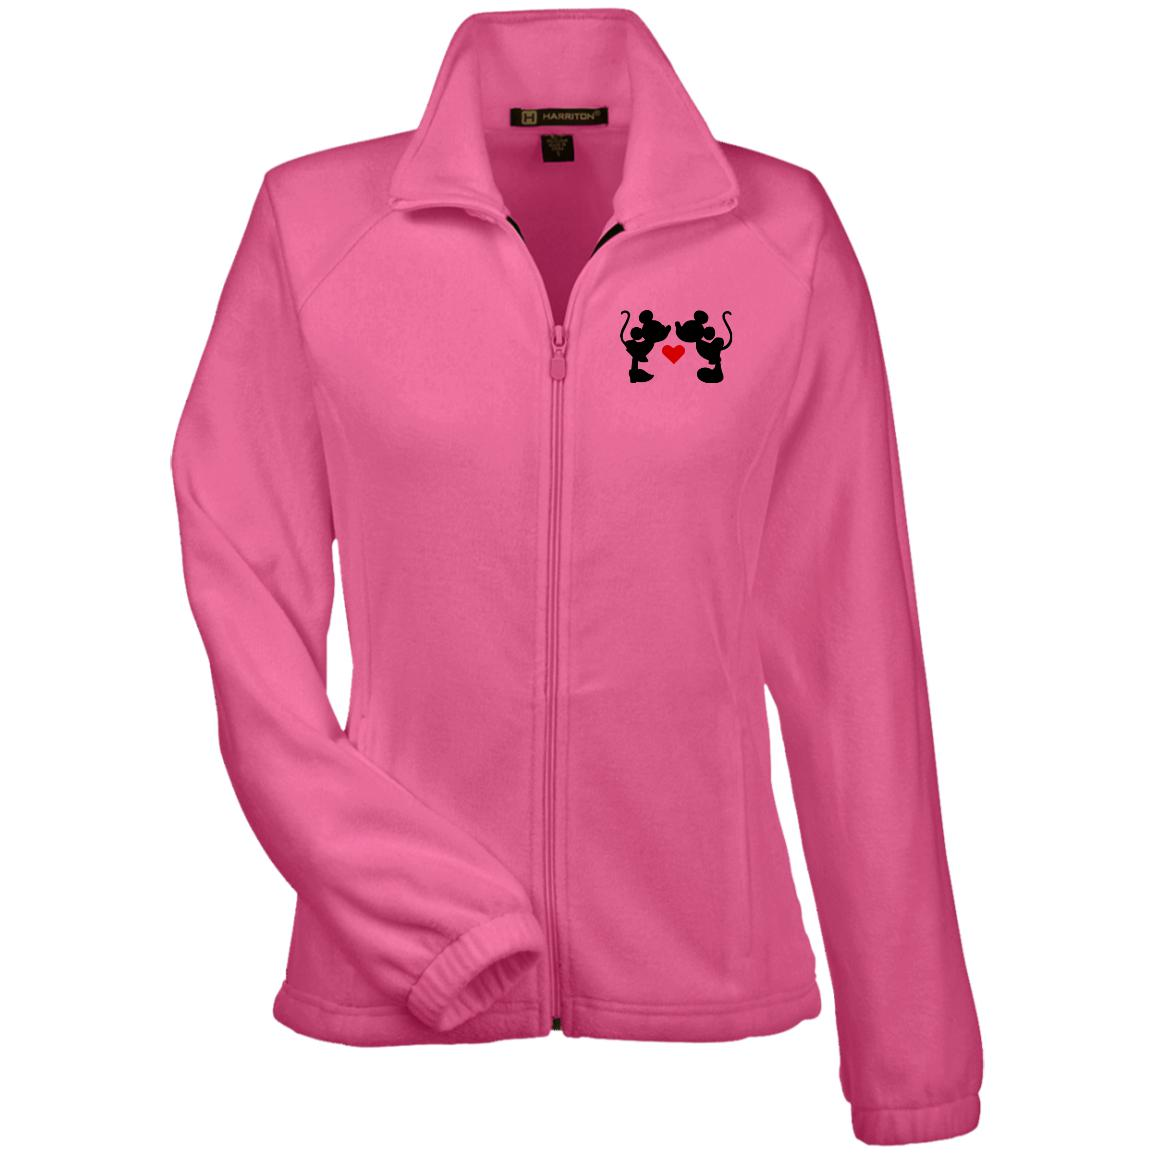 Mickey & Minnie Kissing Embroidered Women's Fleece Jacket